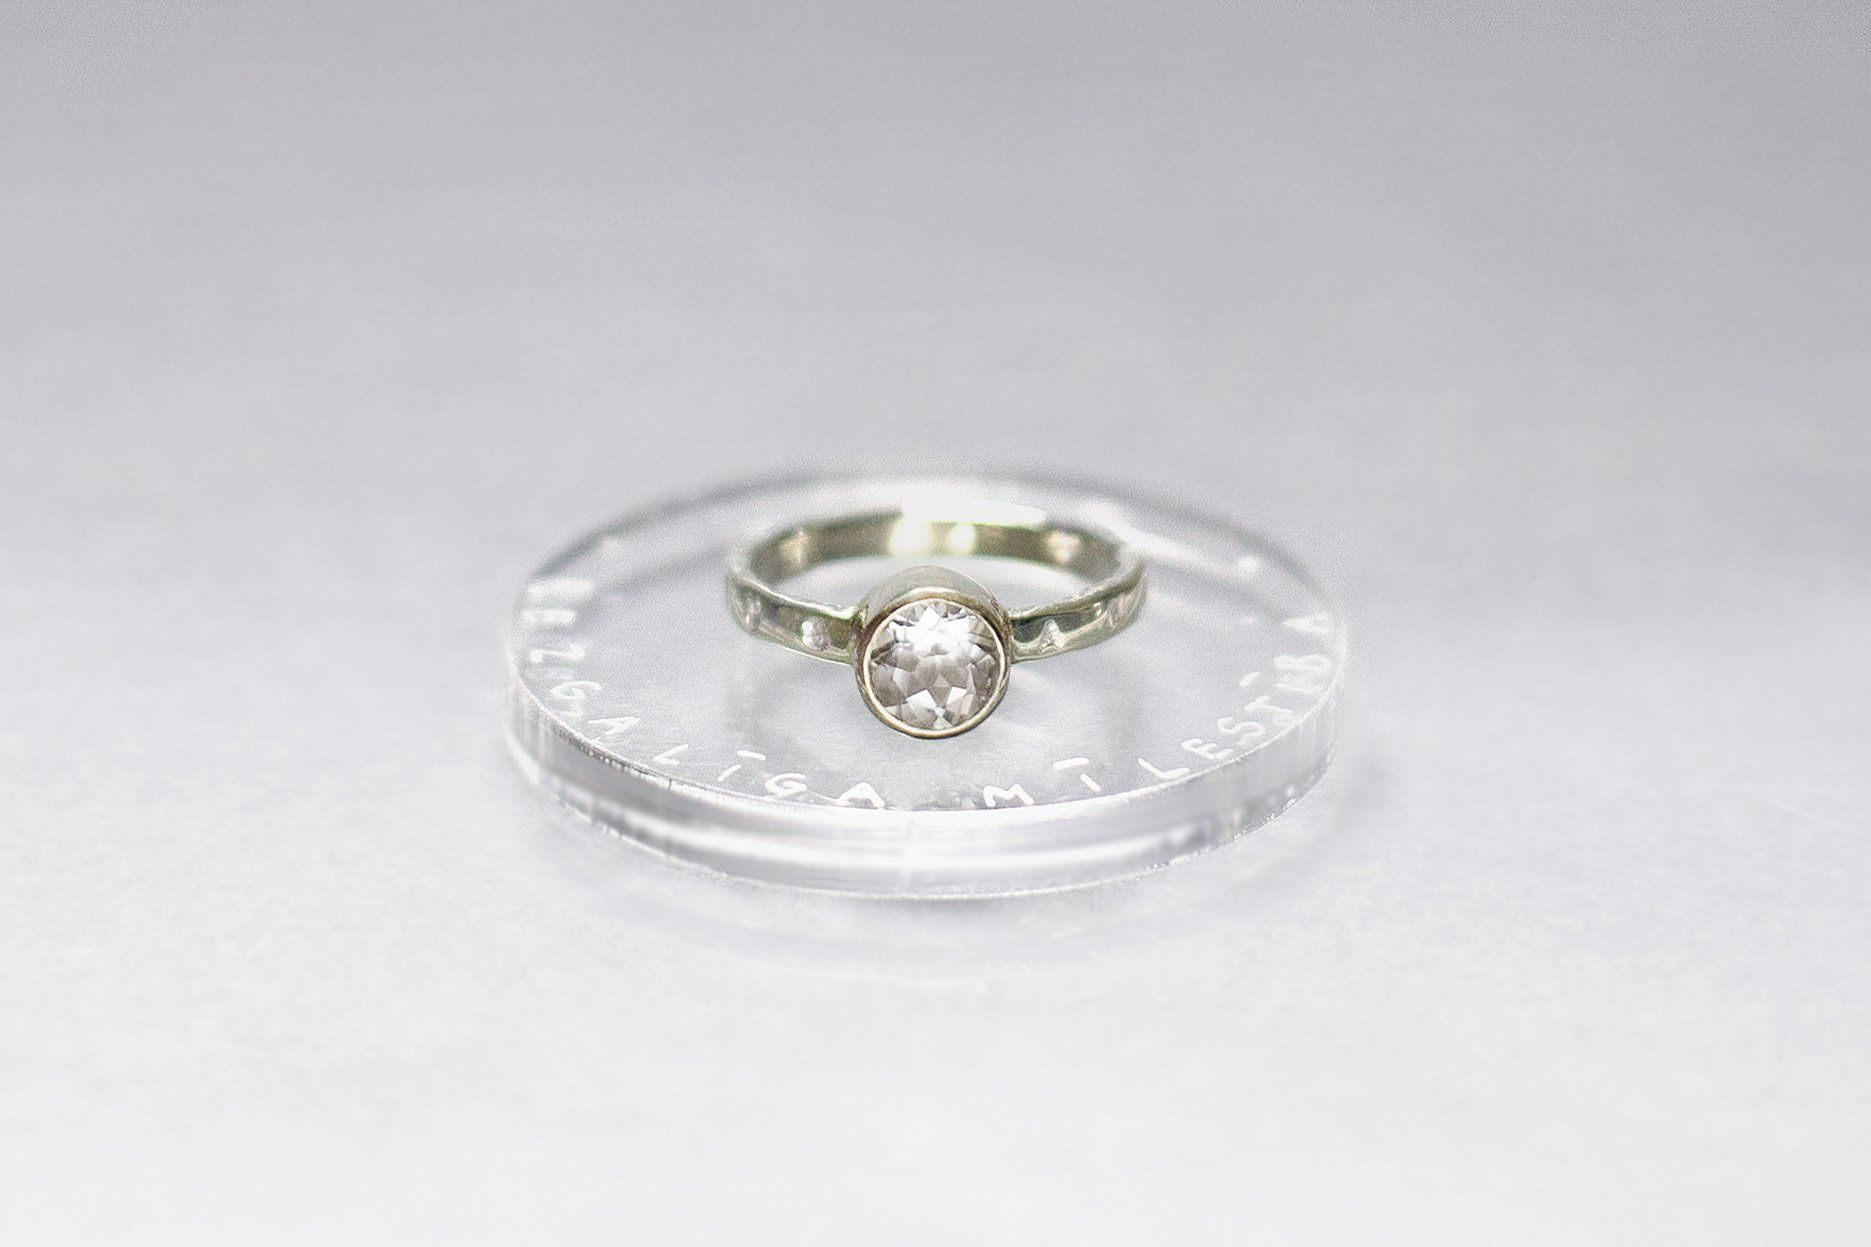 Electrum Ring With Rock Crystal And Inscription In Latin Rings Rock Crystal Electrum